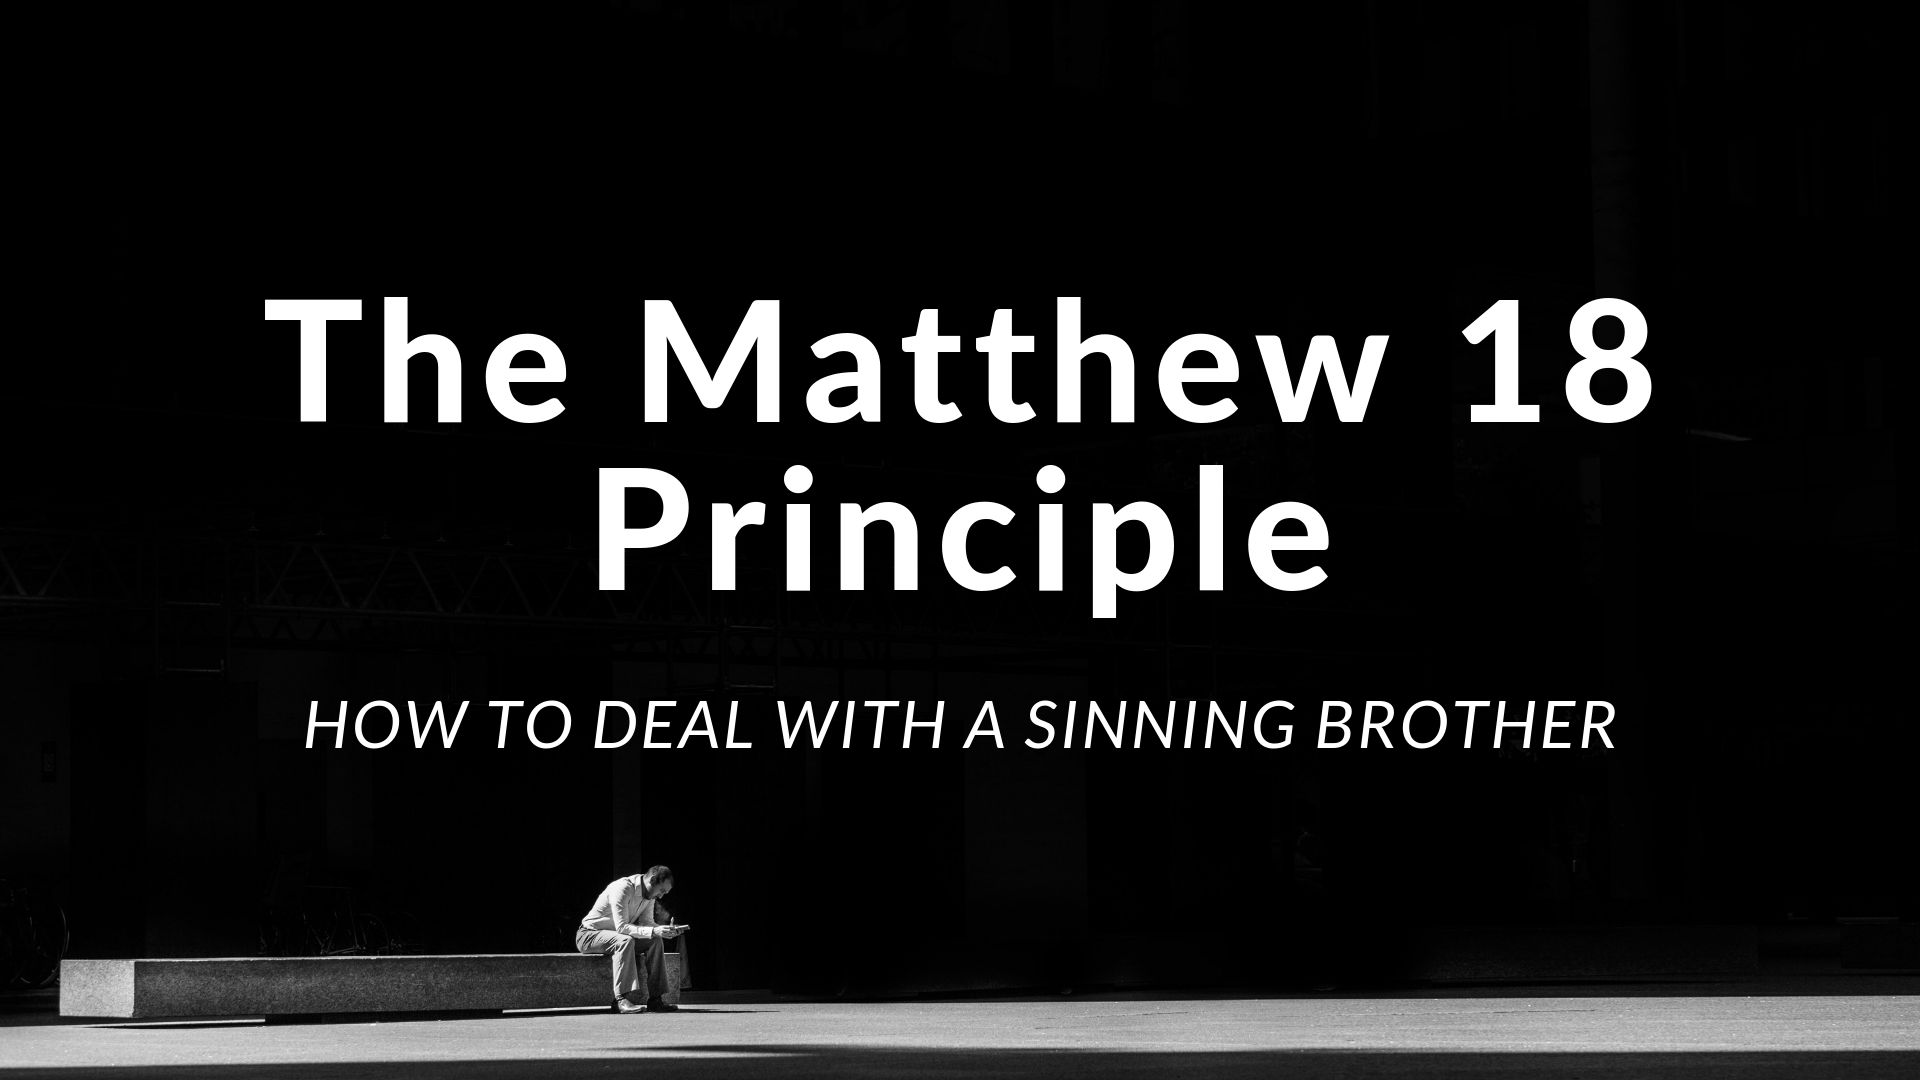 How to Deal with a Sinning Brother (Matthew 18:15-17)